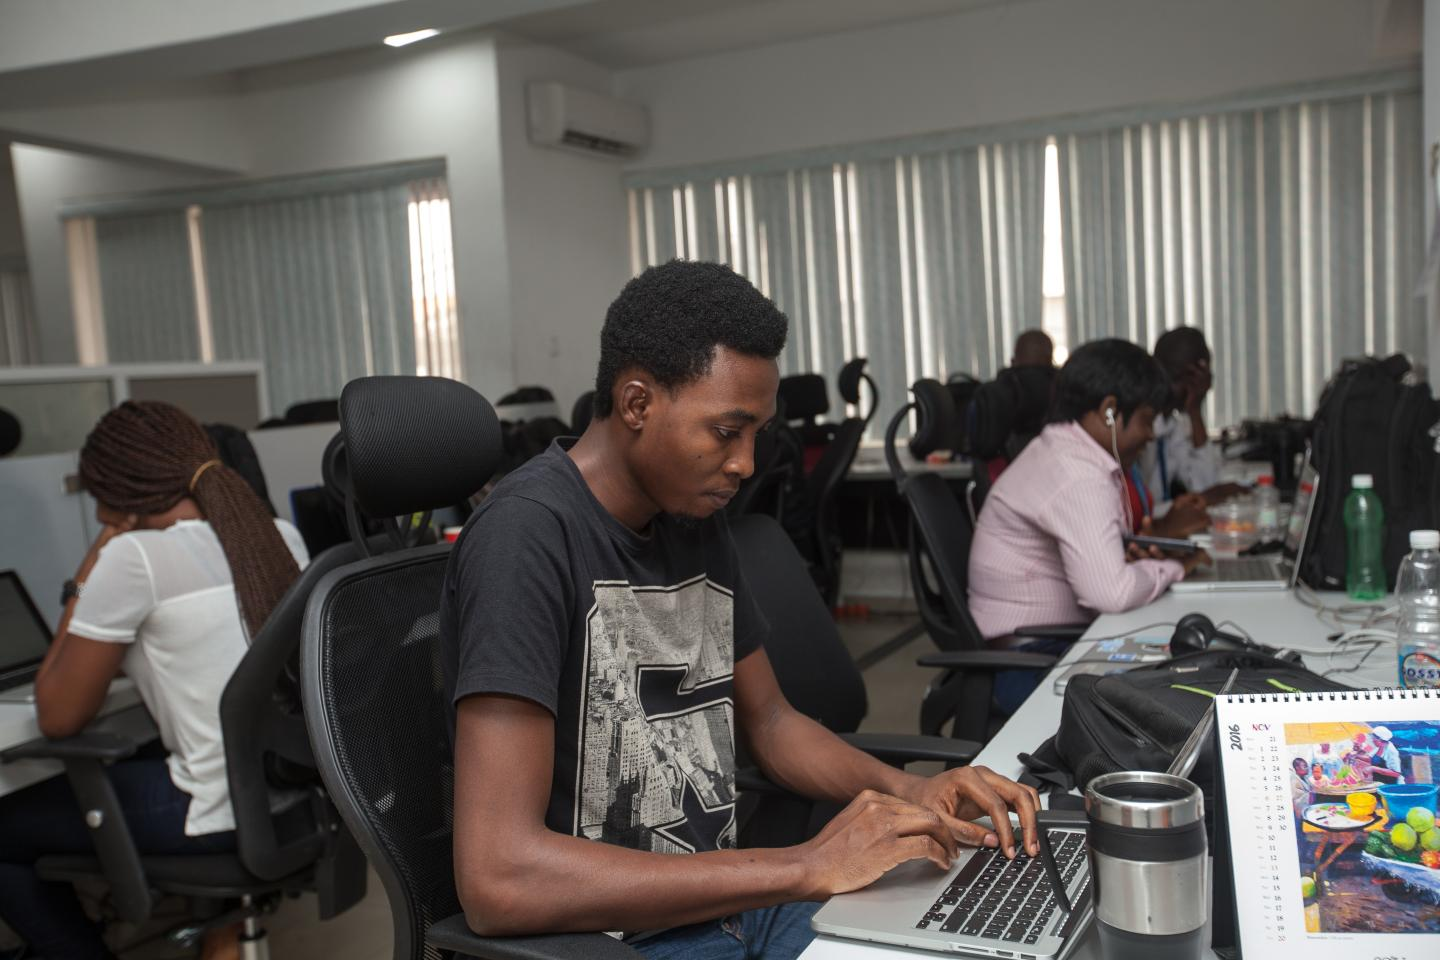 The technology sector in Nigeria, which has the continent's biggest population and one of its strongest economies, is generating significant investment from venture capital firms both inside and outside Africa. Photo: ADEOLA OLAGUNJU